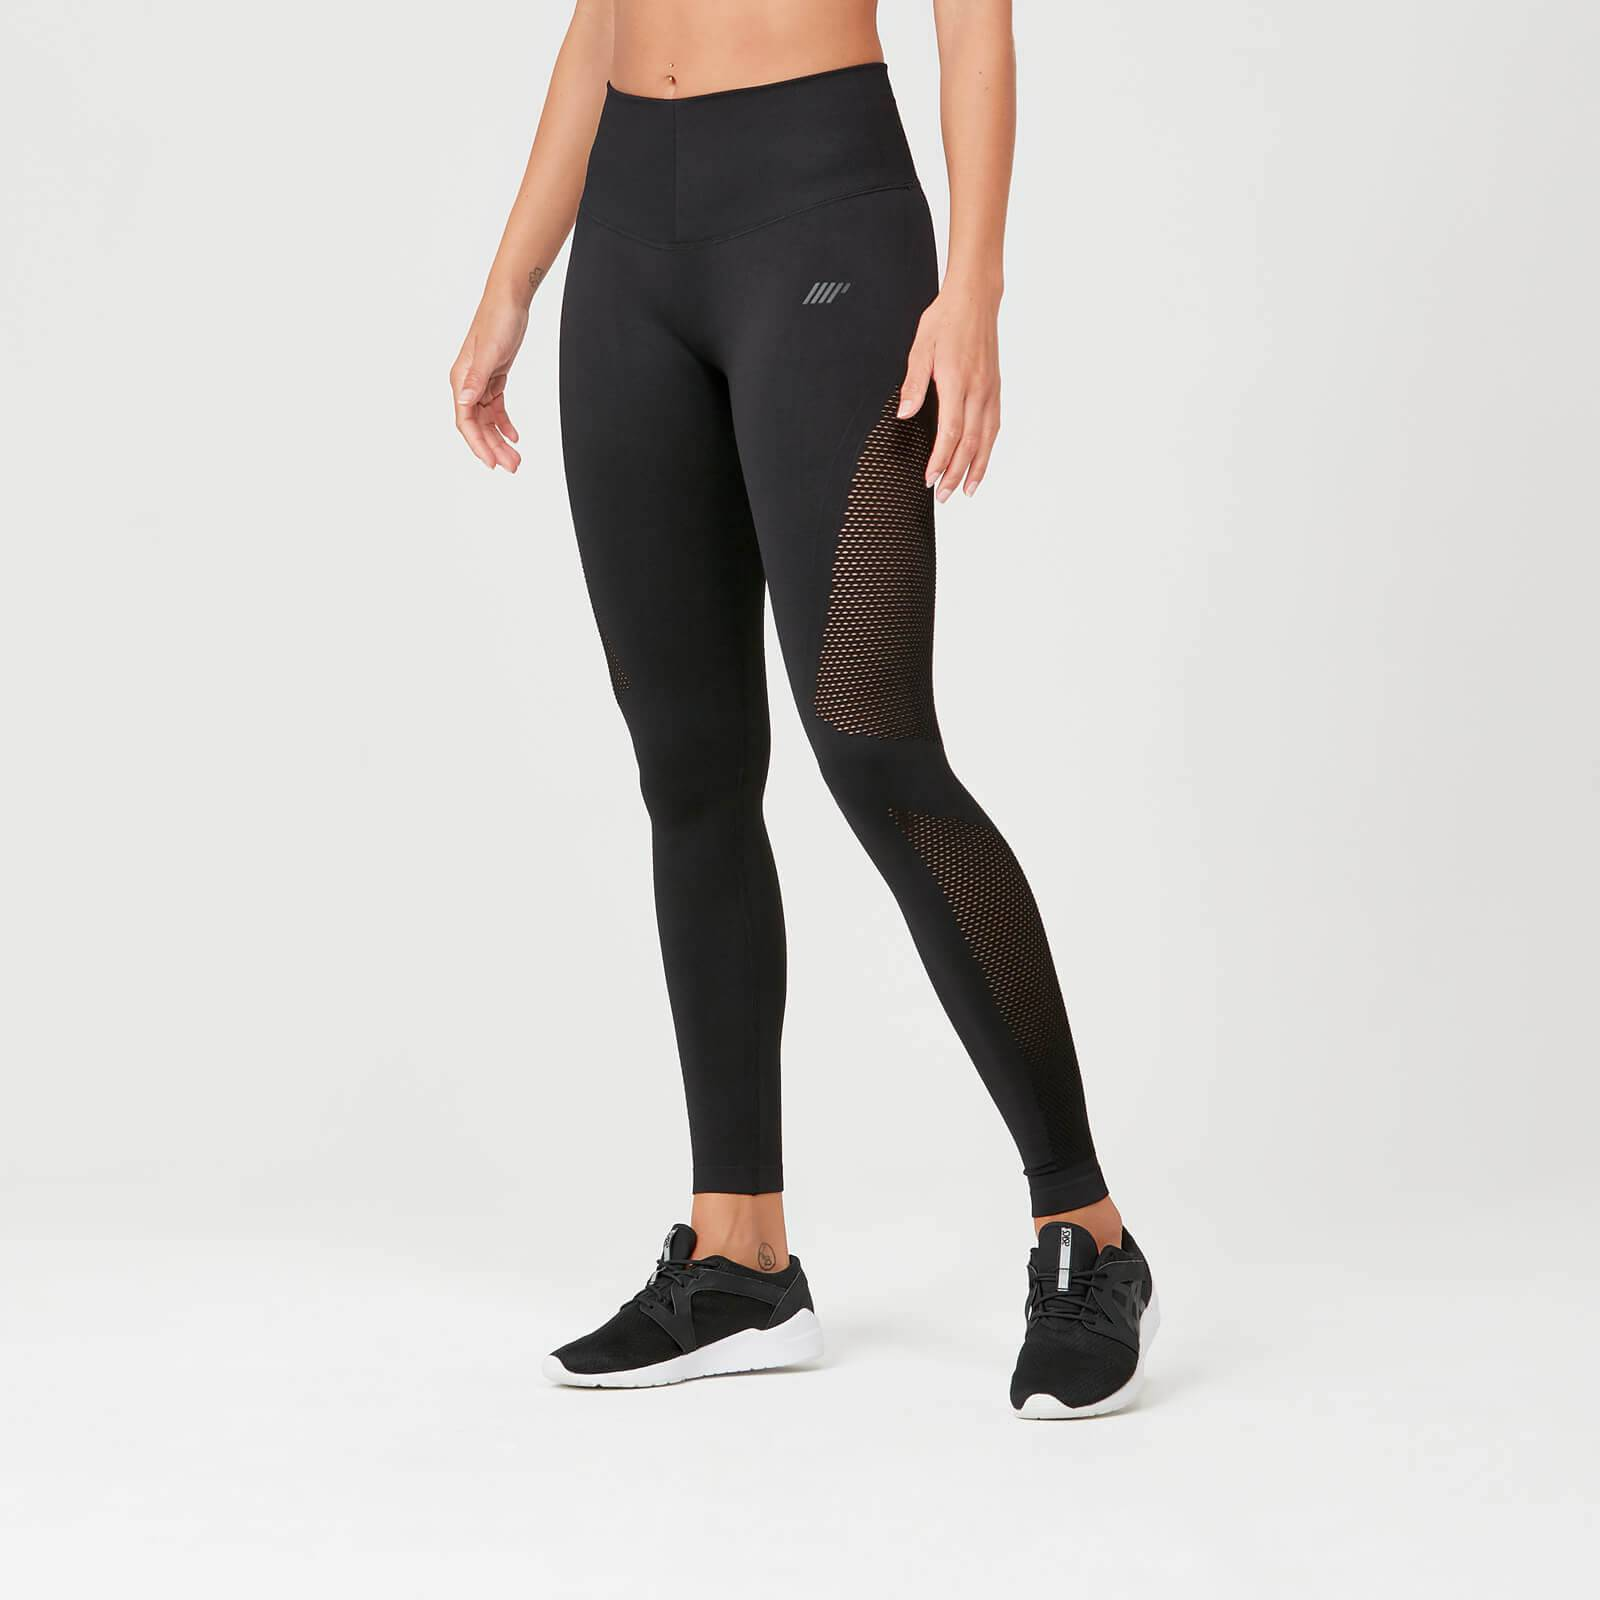 Myprotein Leggings Shape Seamless - XL